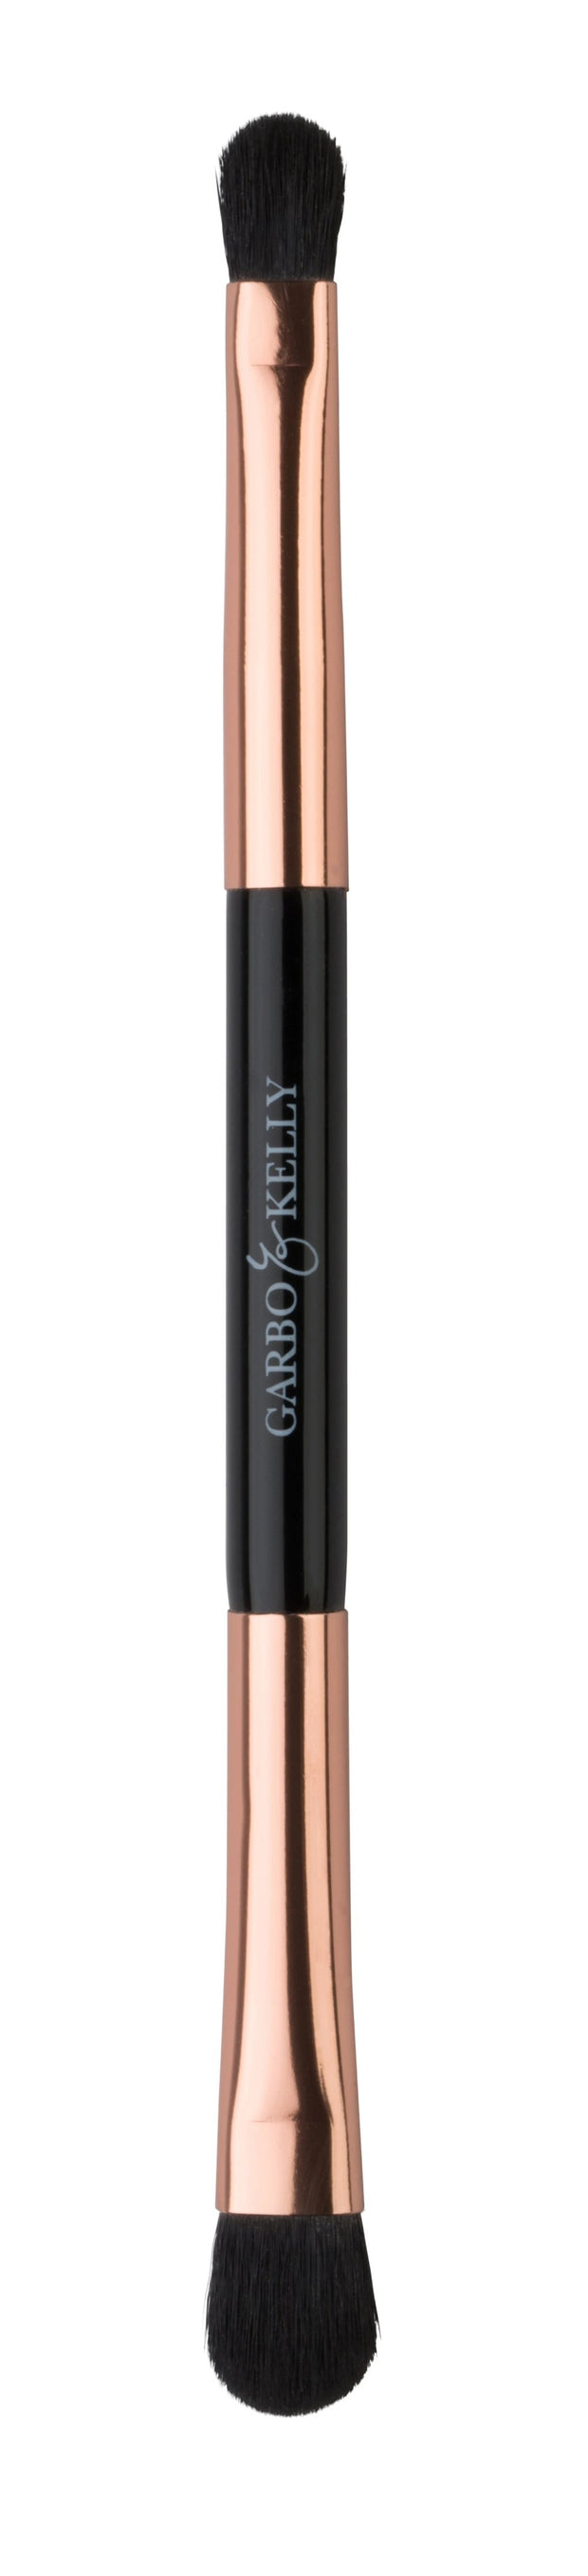 Garbo & Kelly Double Ended Eyeshadow Brush